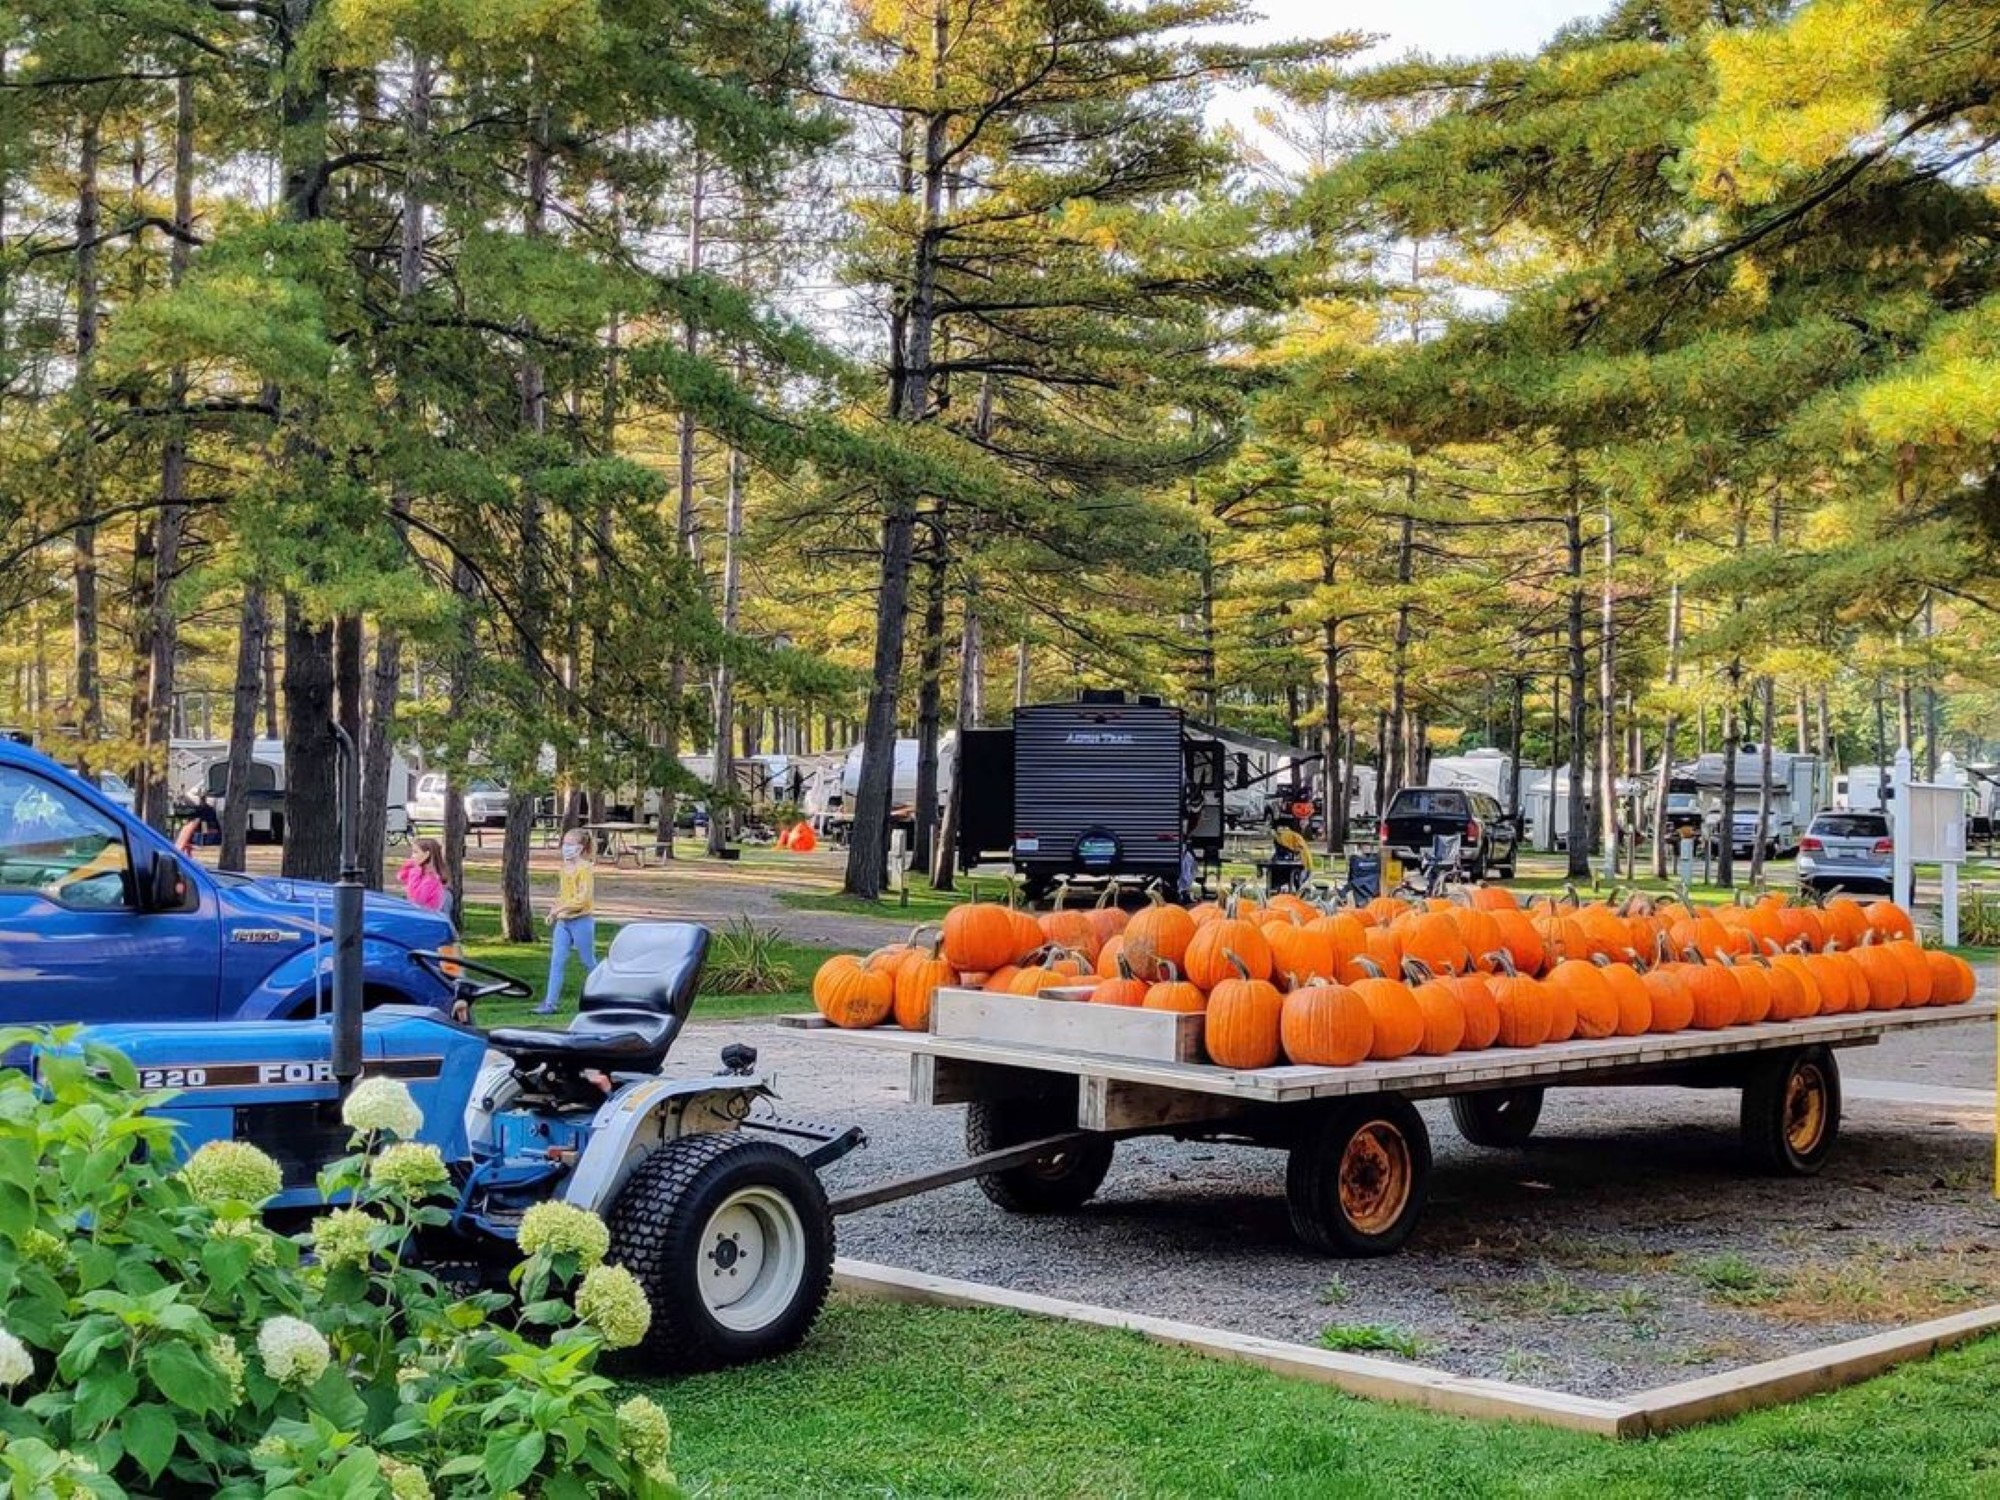 Sep 25, 2021· halloween is fast approaching, and people everywhere are getting in a spooky mood. Halloween: Event at the Cardinal / Ottawa South KOA Holiday Campground in Ontario